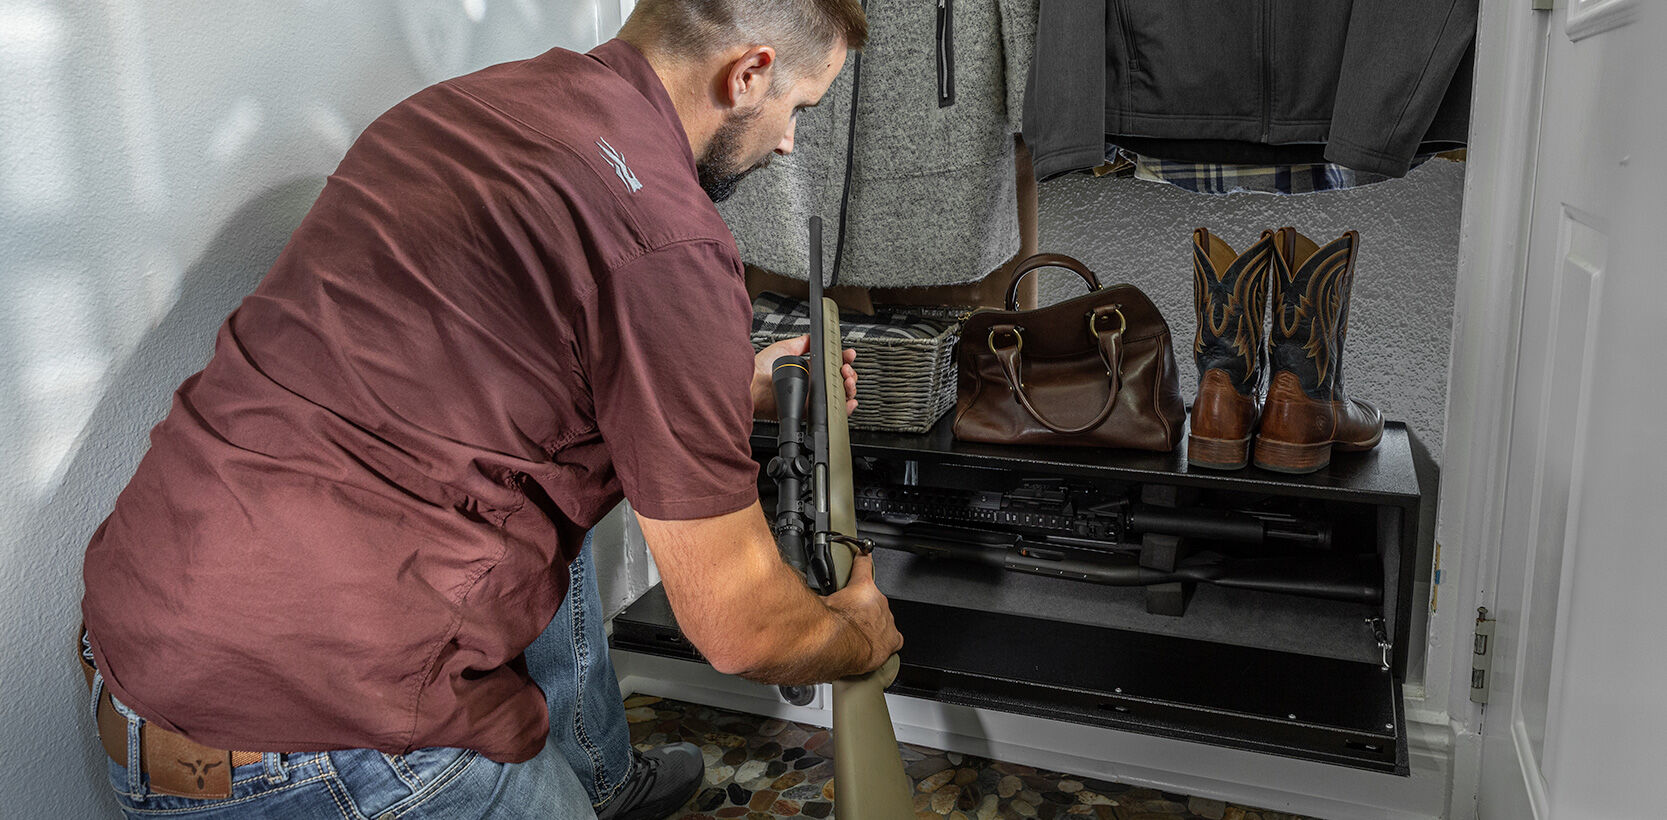 Slide number 4 Store up to threerifles in the newAR GUNLOCKER XL The fully enclosed design of our AR Gunlocker XL provides convenient, tamper-proof security for up to three tactical length rifles.  Find Out More